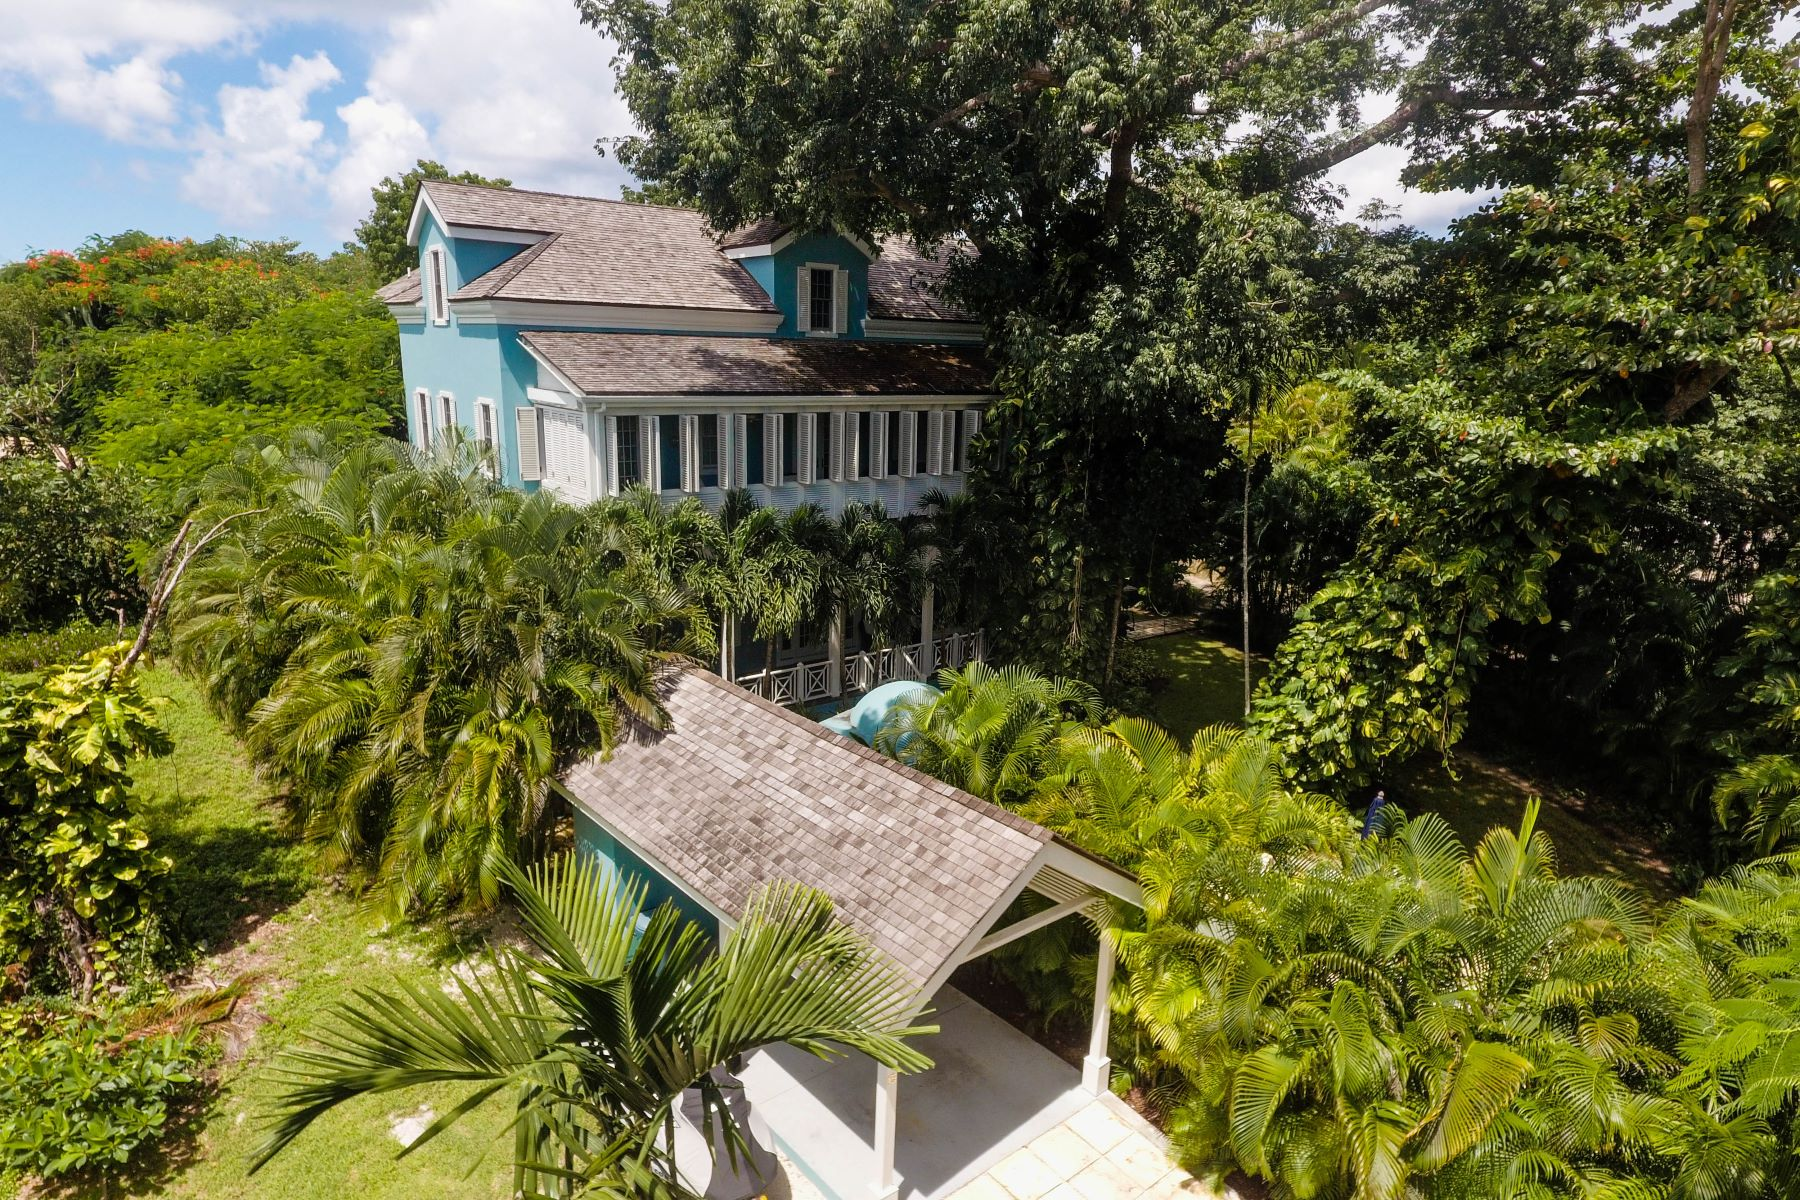 Single Family Home for Sale at #15 Club Villas in Old Fort Bay Old Fort Bay, Nassau And Paradise Island, Bahamas